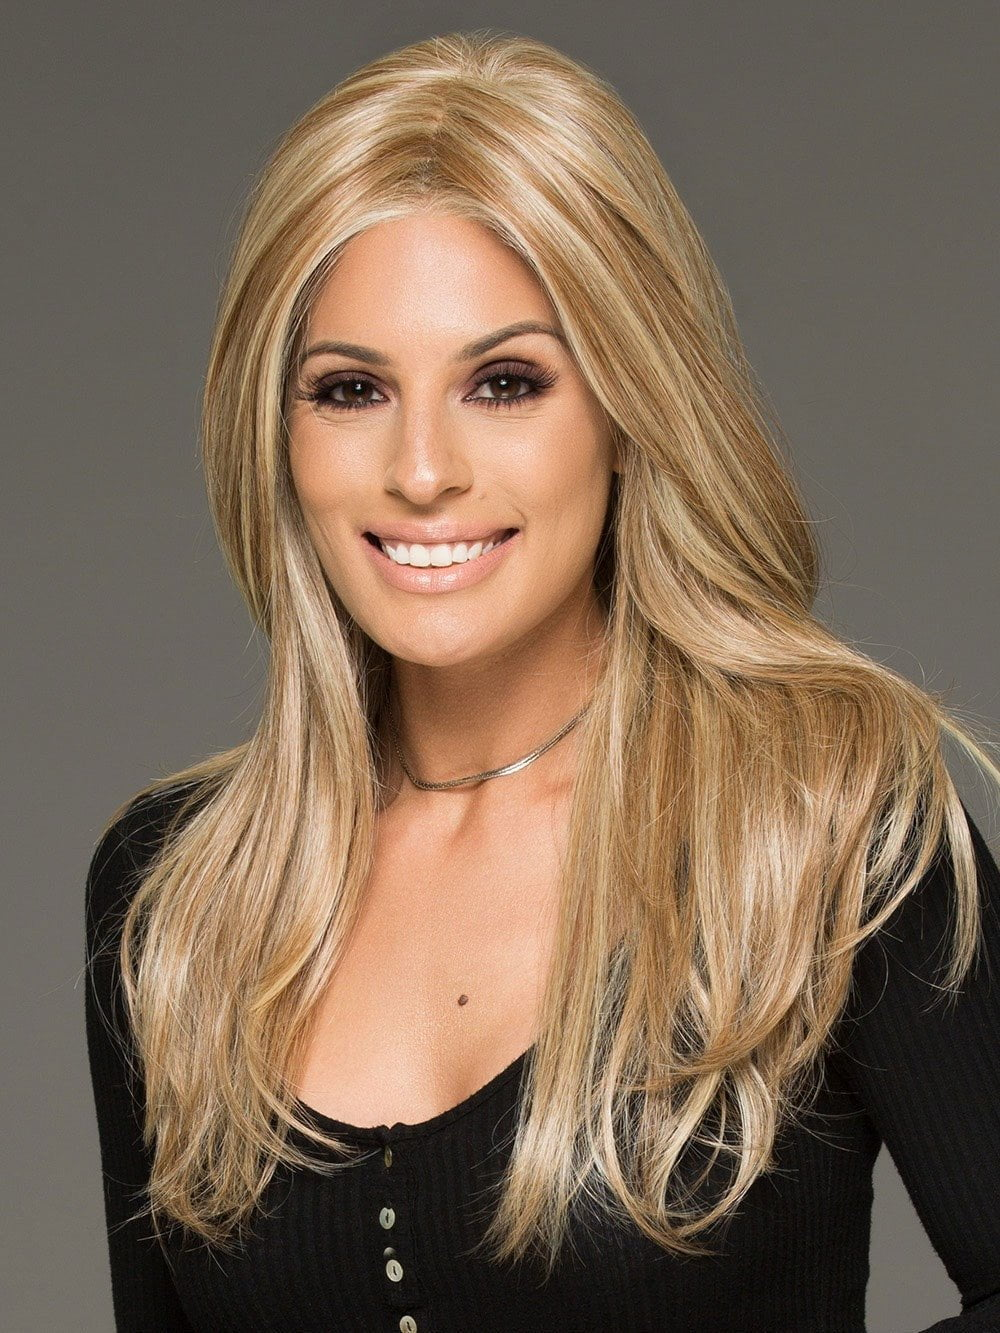 SCENE STEALER by Raquel Welch in RL14/22 PALE GOLDEN WHEAT | Dark Blonde Evenly Blended with Platinum Blonde